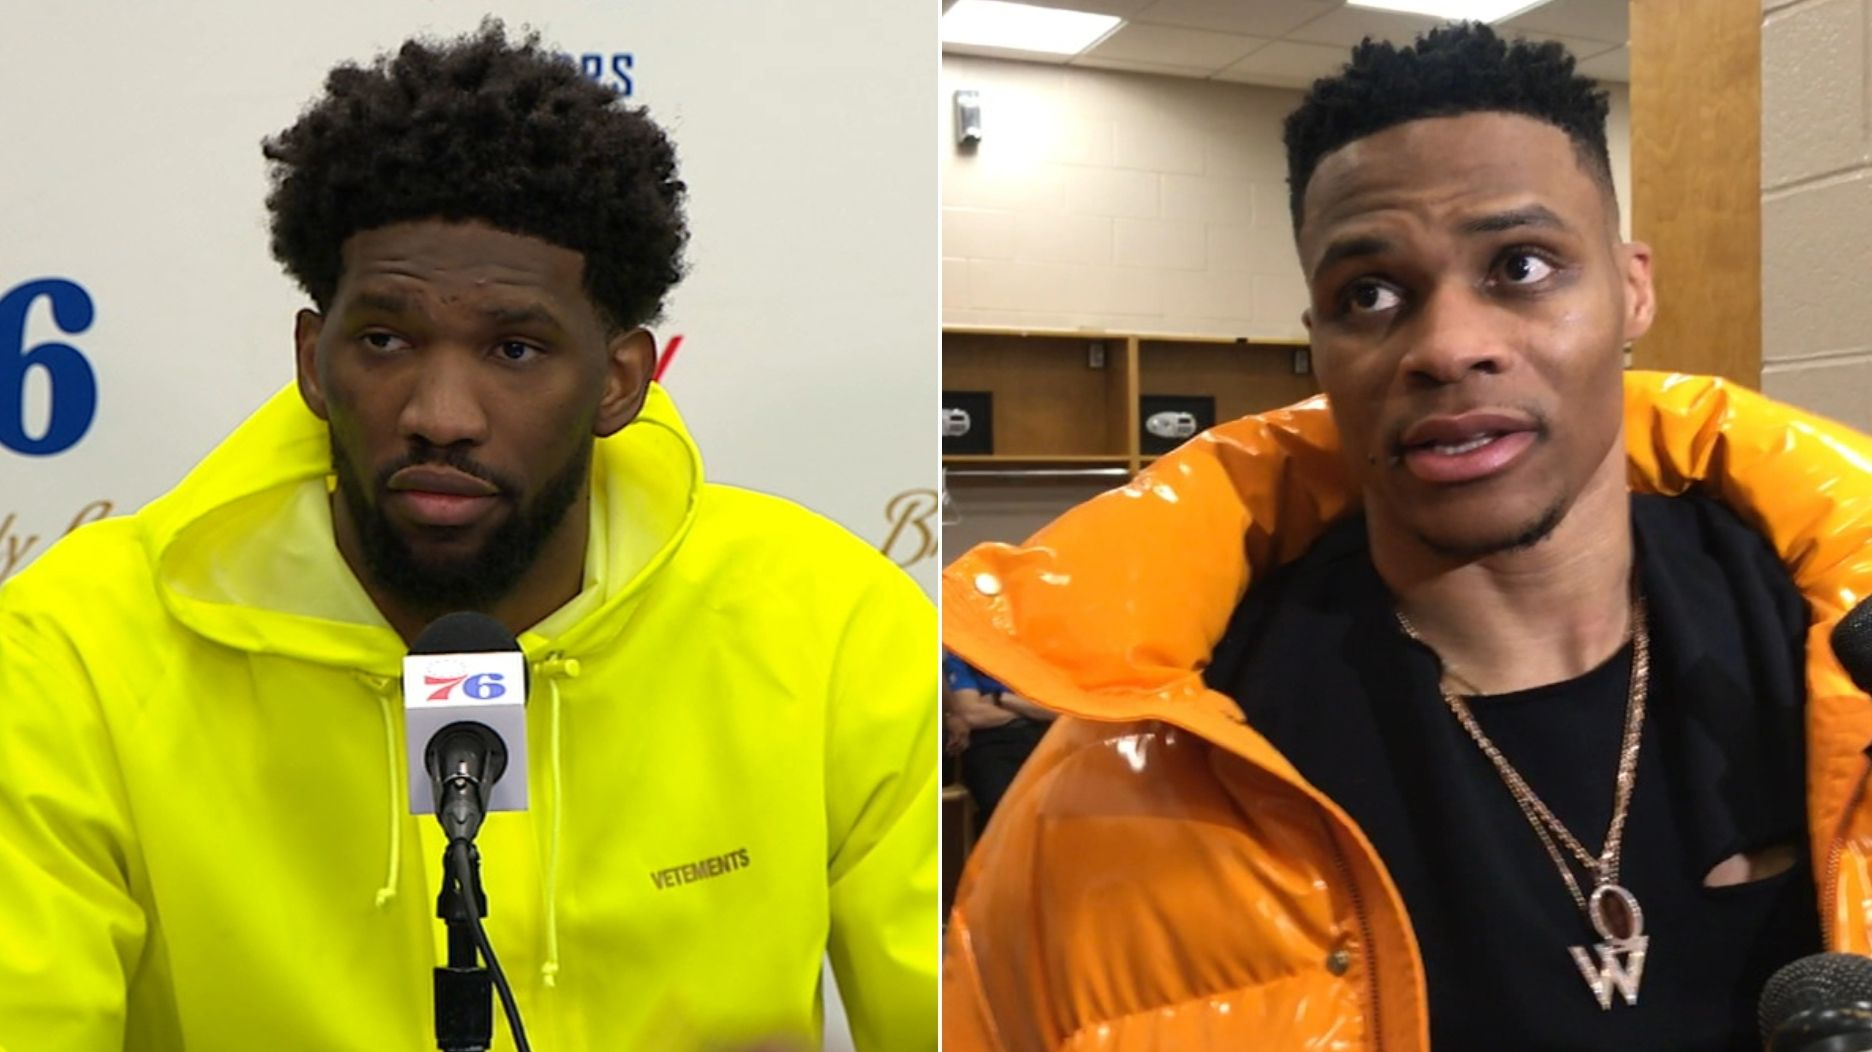 Embiid, Westbrook not fond of each other